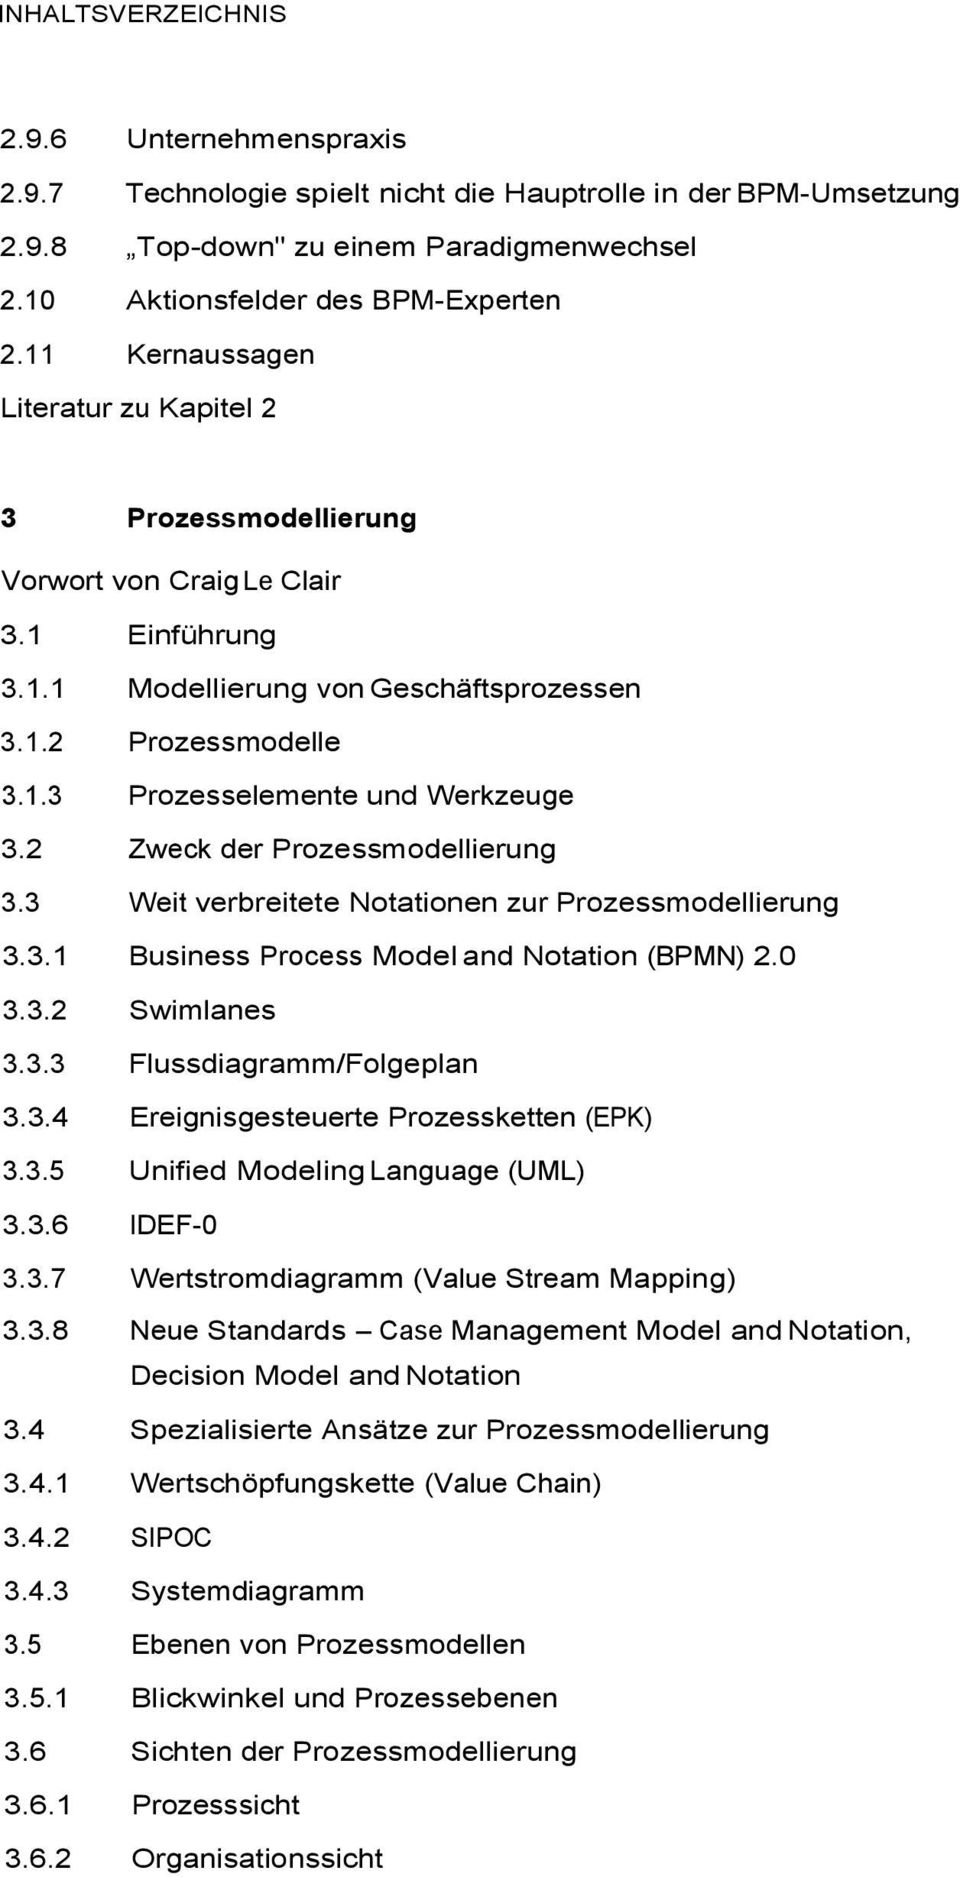 2 Zweck der Prozessmodellierung 3.3 Weit verbreitete Notationen zur Prozessmodellierung 3.3.1 Business Process Model and Notation (BPMN) 2.0 3.3.2 Swimlanes 3.3.3 Flussdiagramm/Folgeplan 3.3.4 Ereignisgesteuerte Prozessketten (EPK) 3.